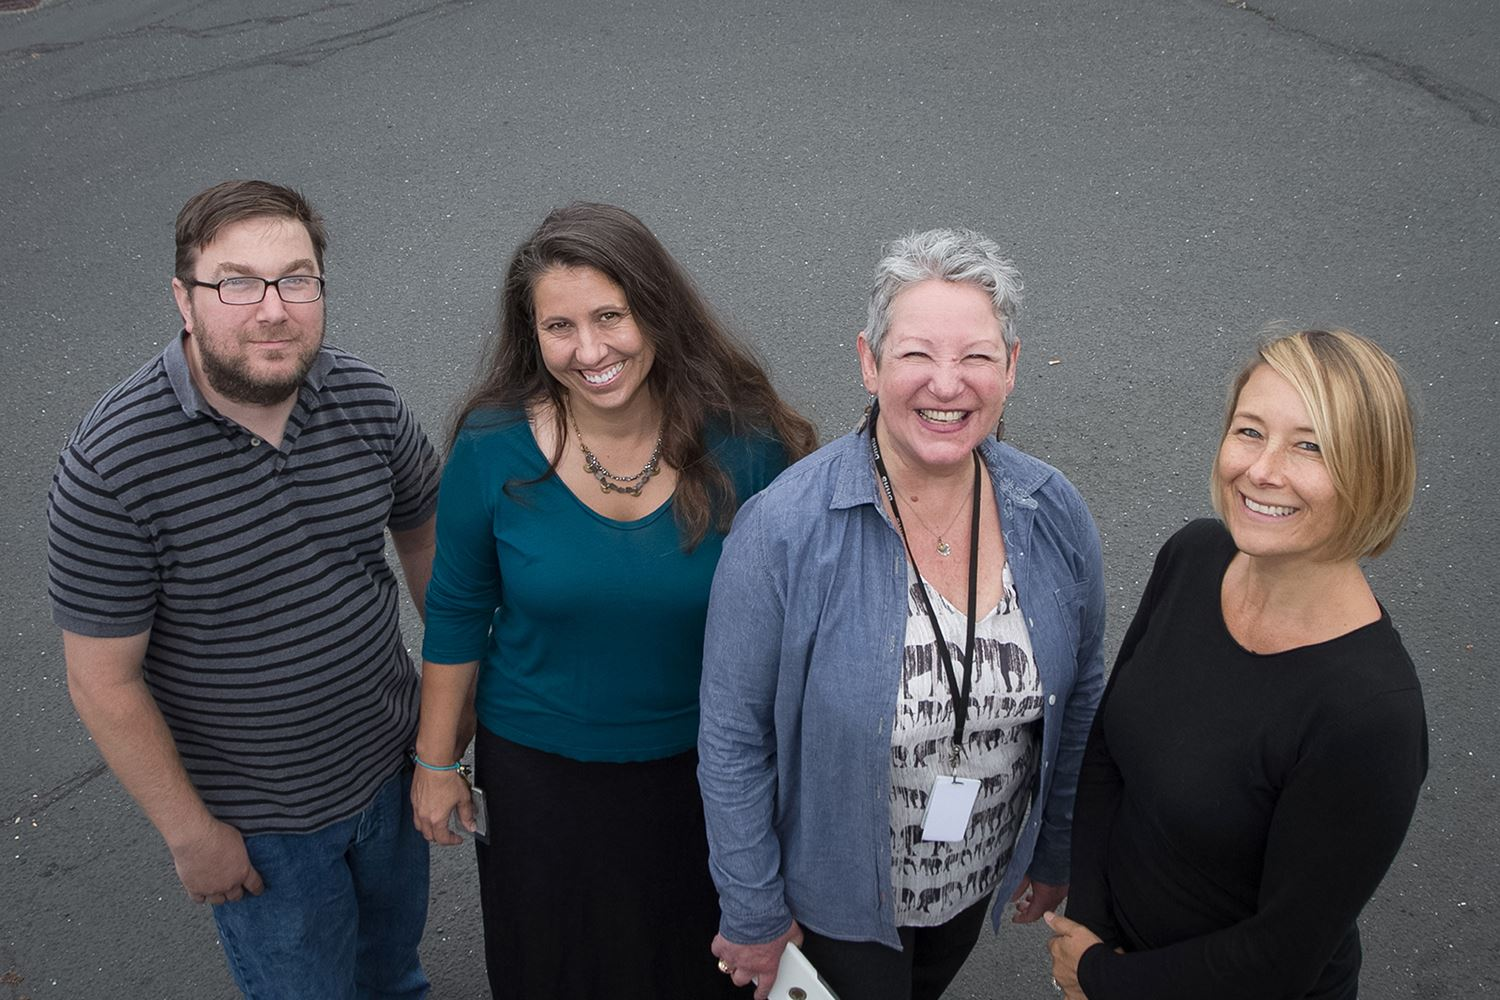 Housing Action Team members Allan Daniel, Lisa Patterson, Pamela Fishtrom and Rosy Provino.